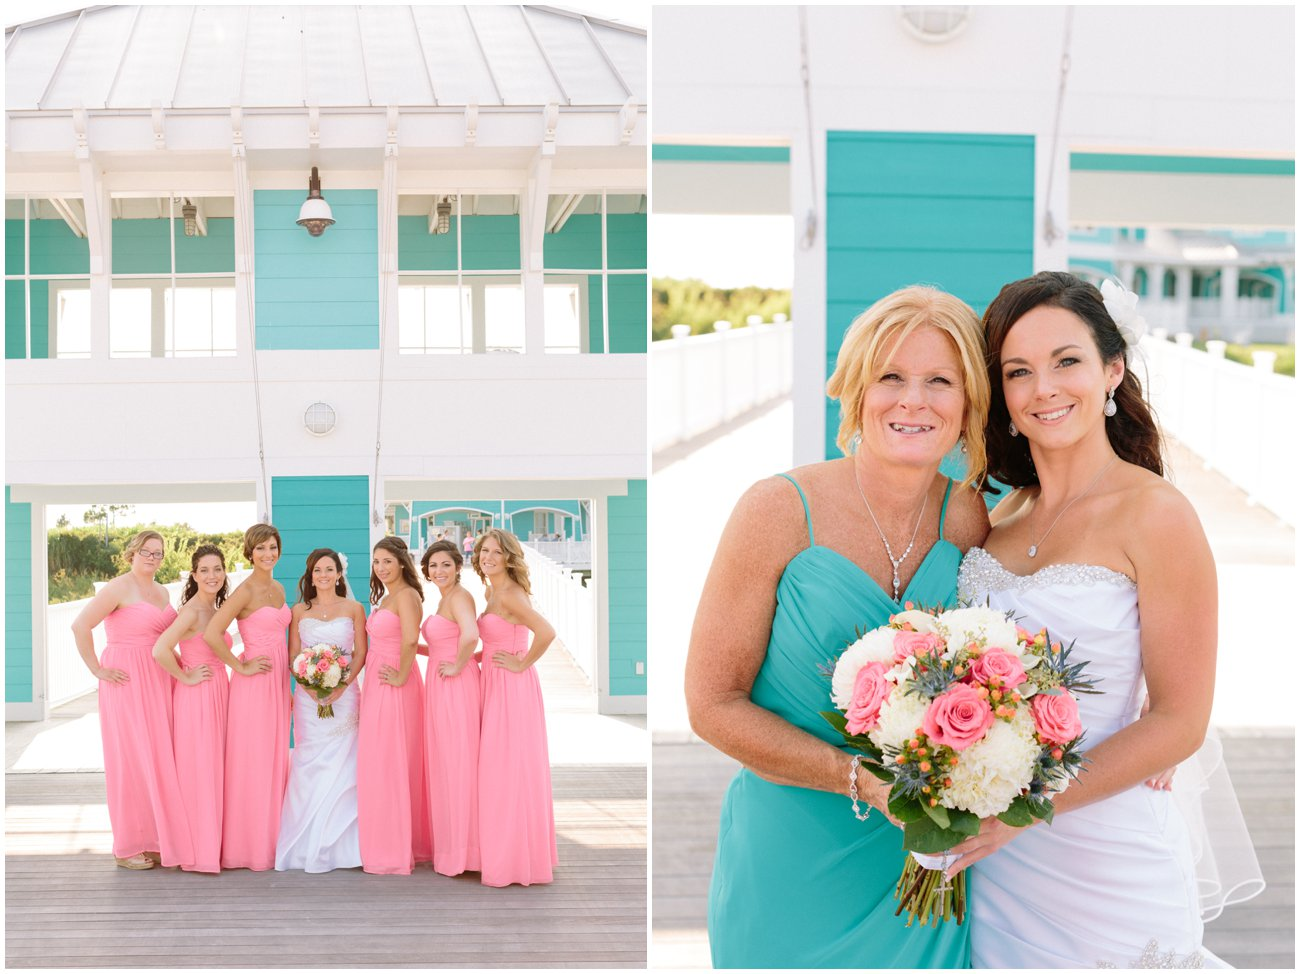 Aqua_Kings_Creek_Marina_Cape_Charles_Wedding_0006